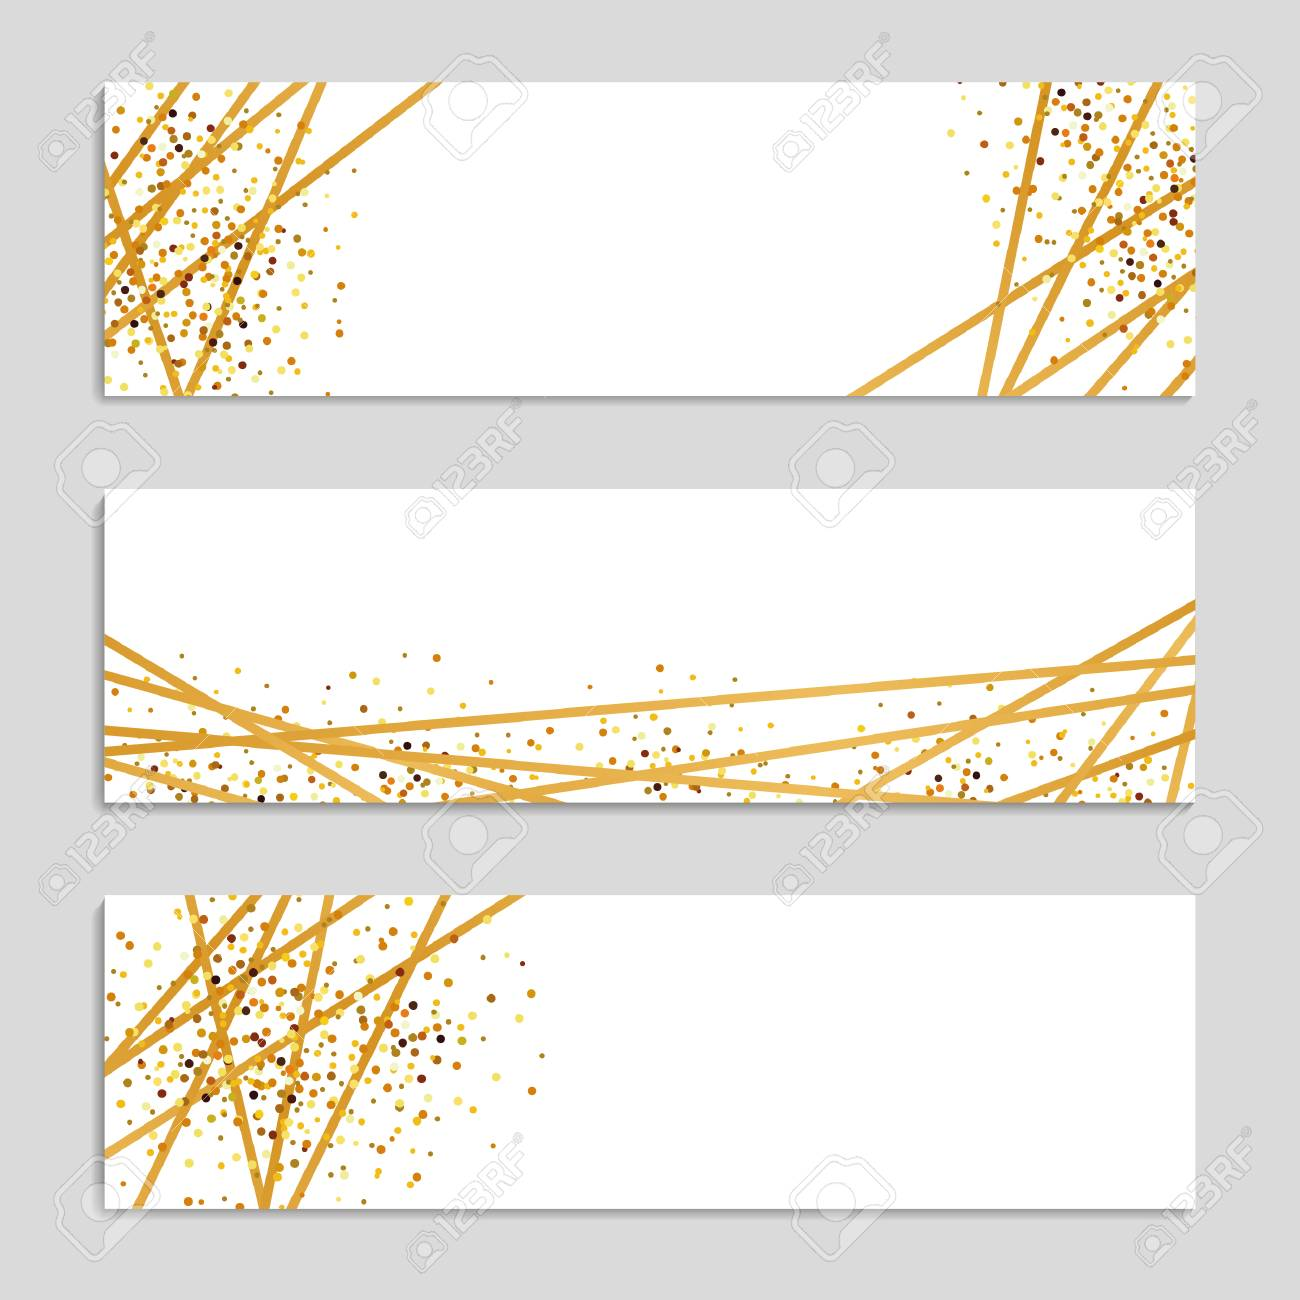 gold sparkles banner background streamer background golden ribbon sparkling glitter christmas holidays background